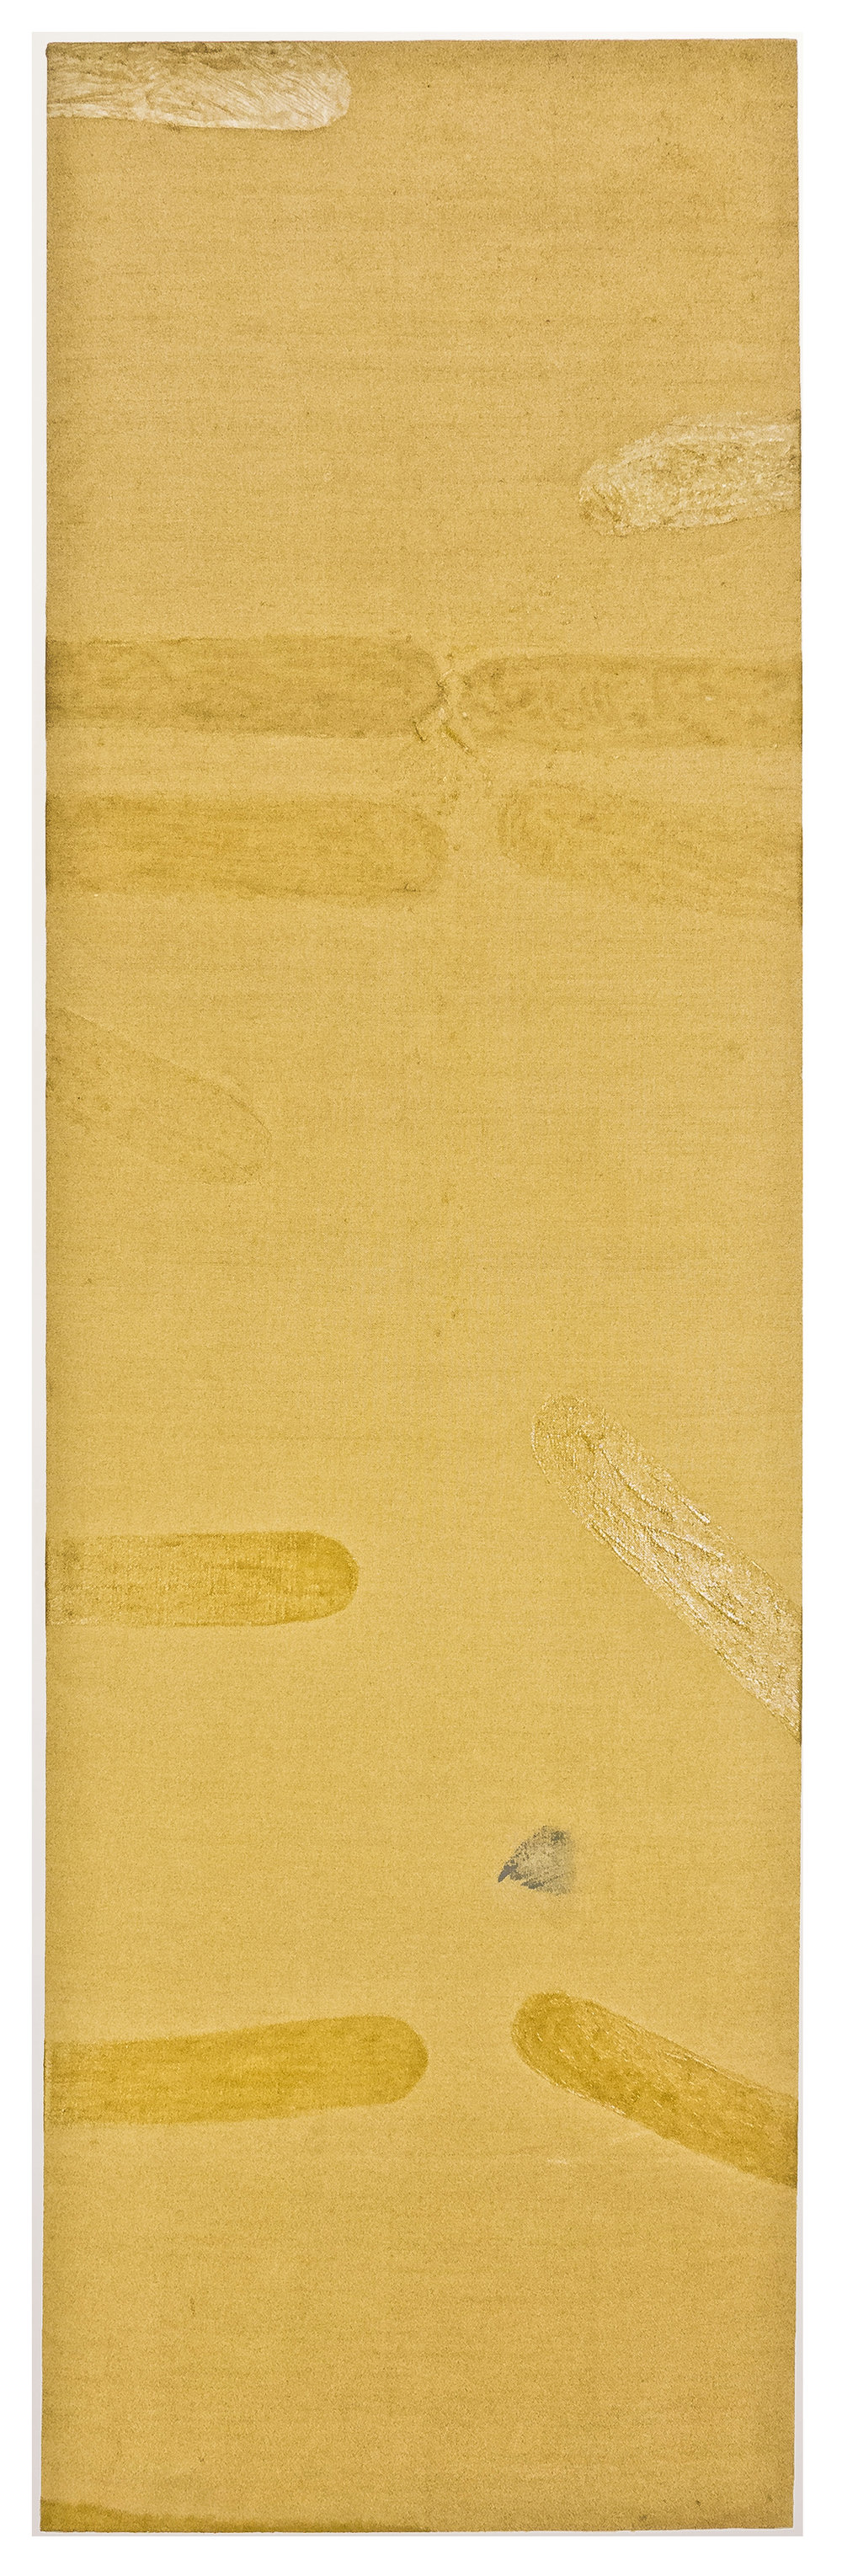 "Kuta, Cuba, AM; 1971; Resin/emulsion on unpainted linen; 103 x 31""; Item #253"